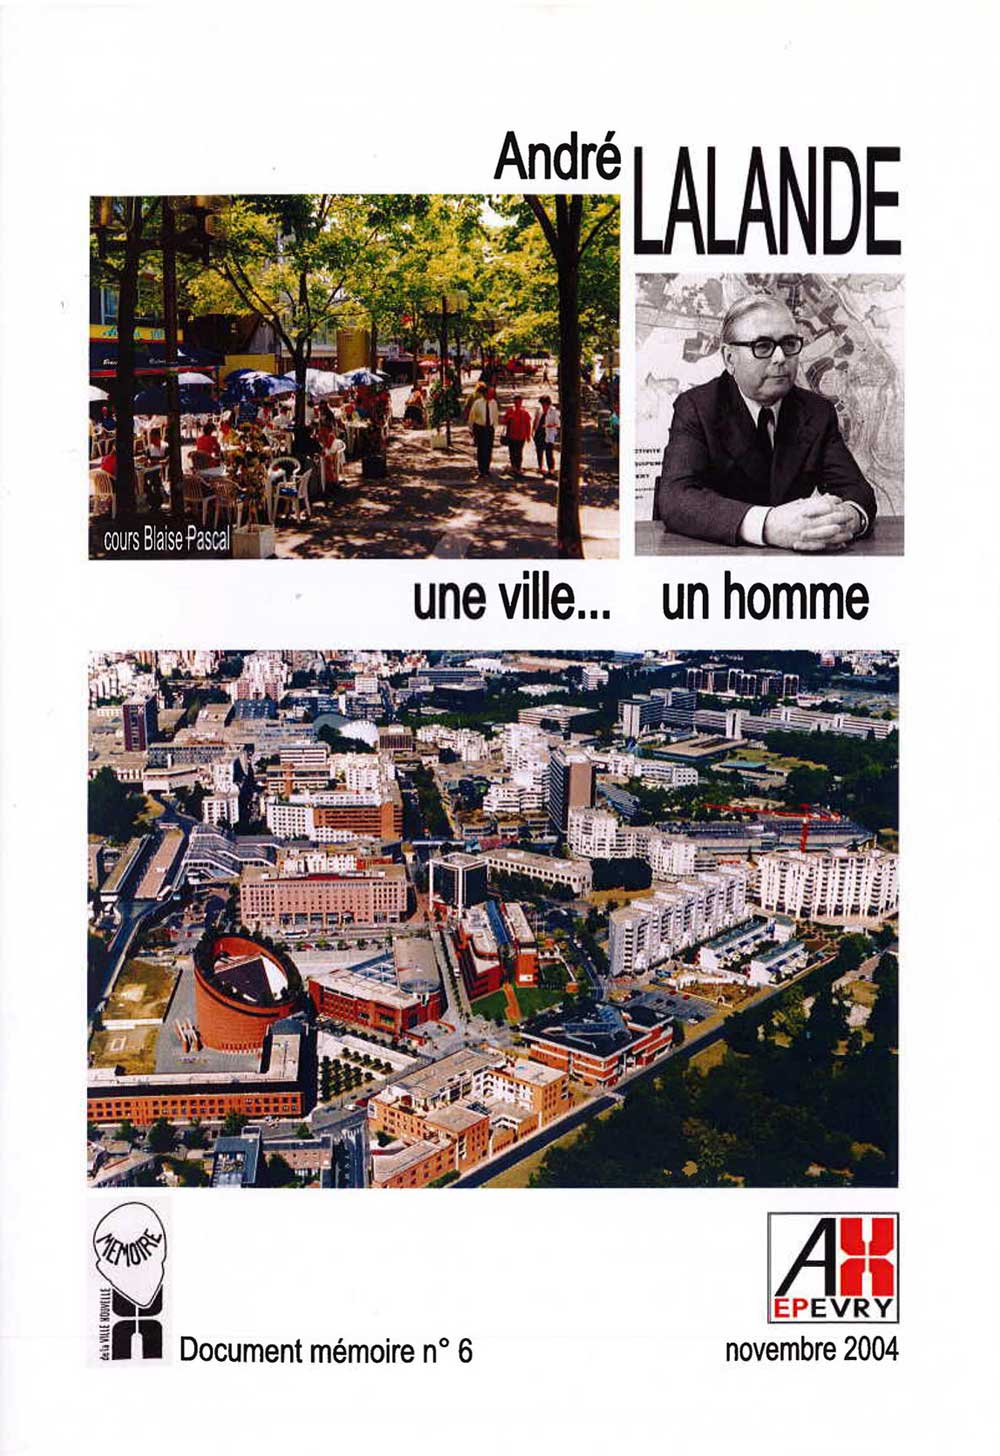 Document mémoire n°6 (2004)